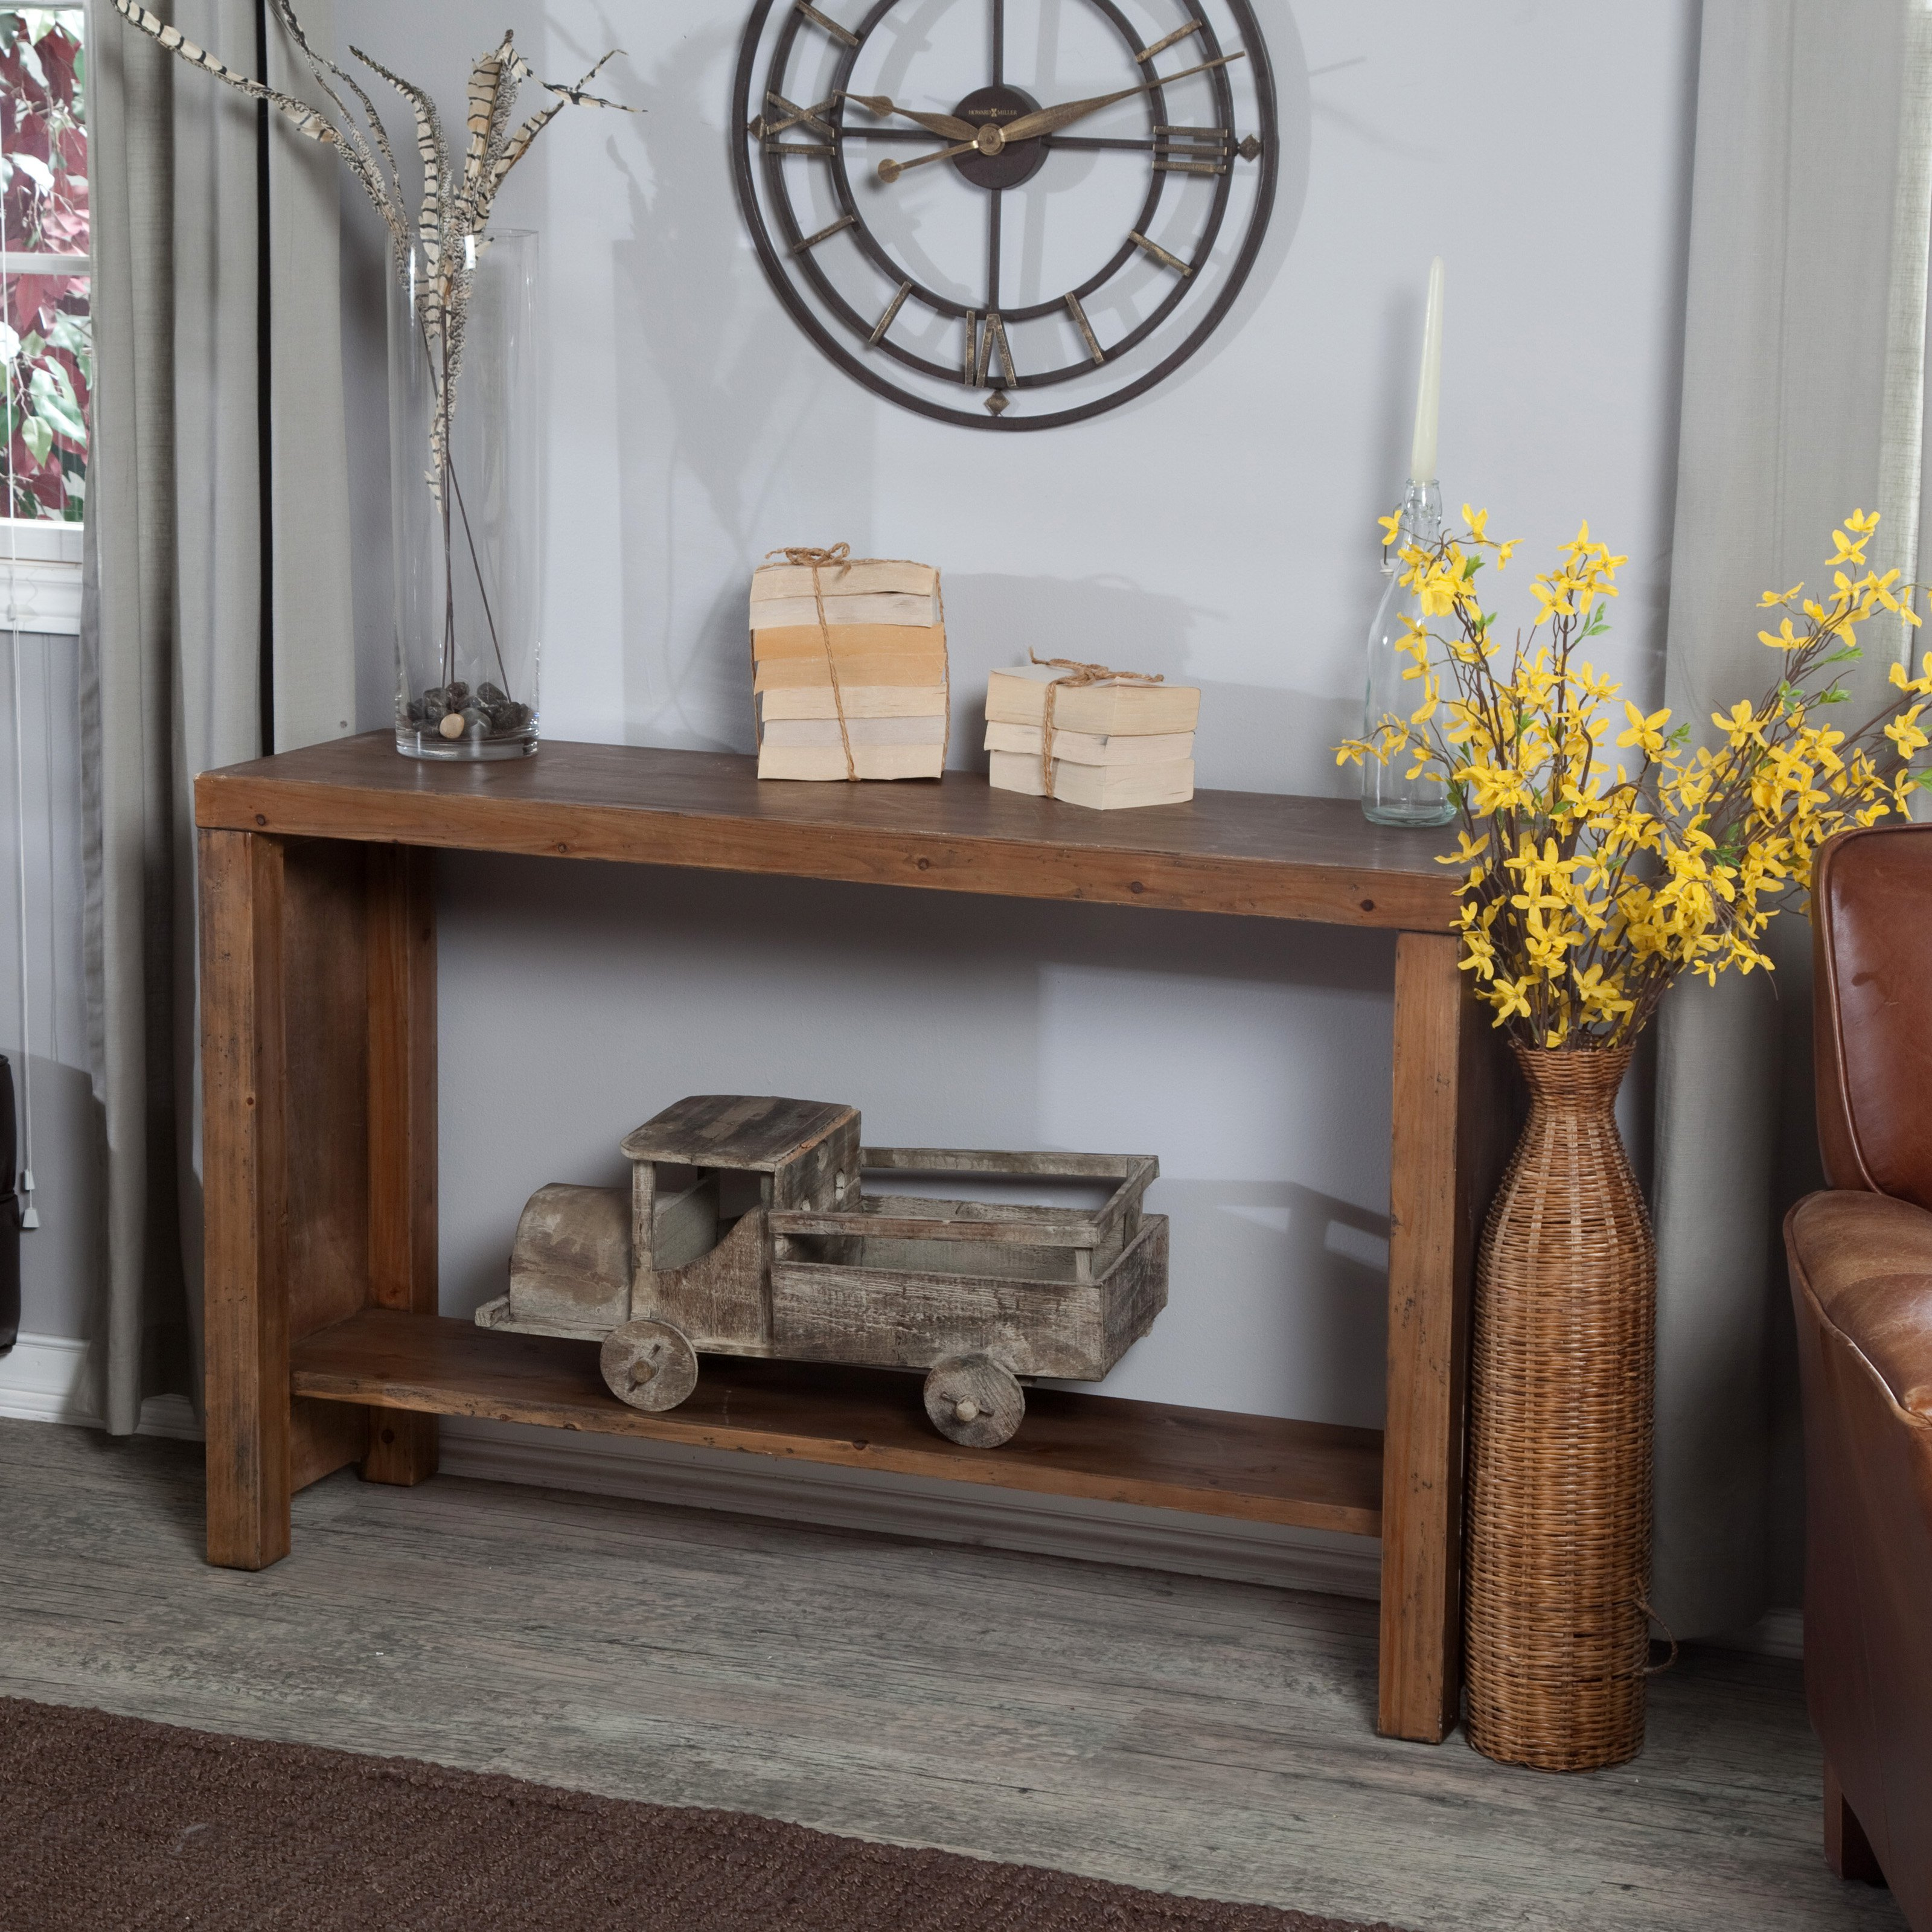 Belham Living Brinfield Rustic Console Table